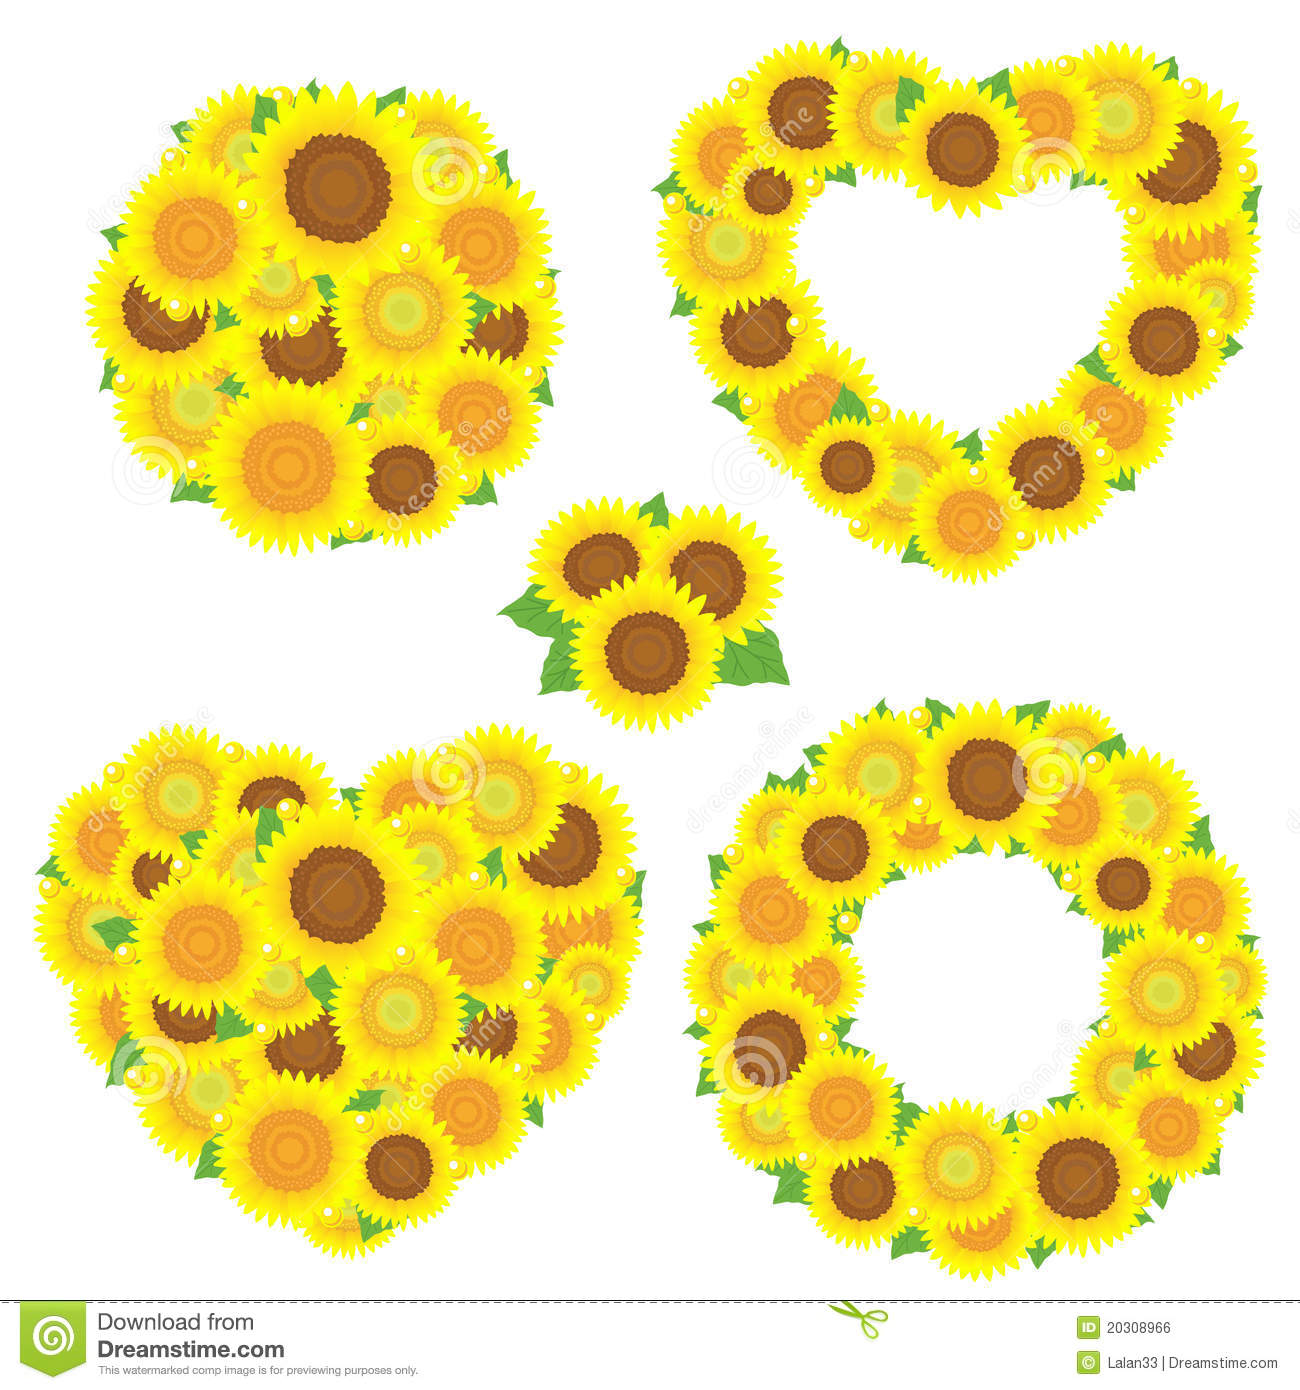 Sunflower Bouquet Royalty Free Stock Image   Image  20308966